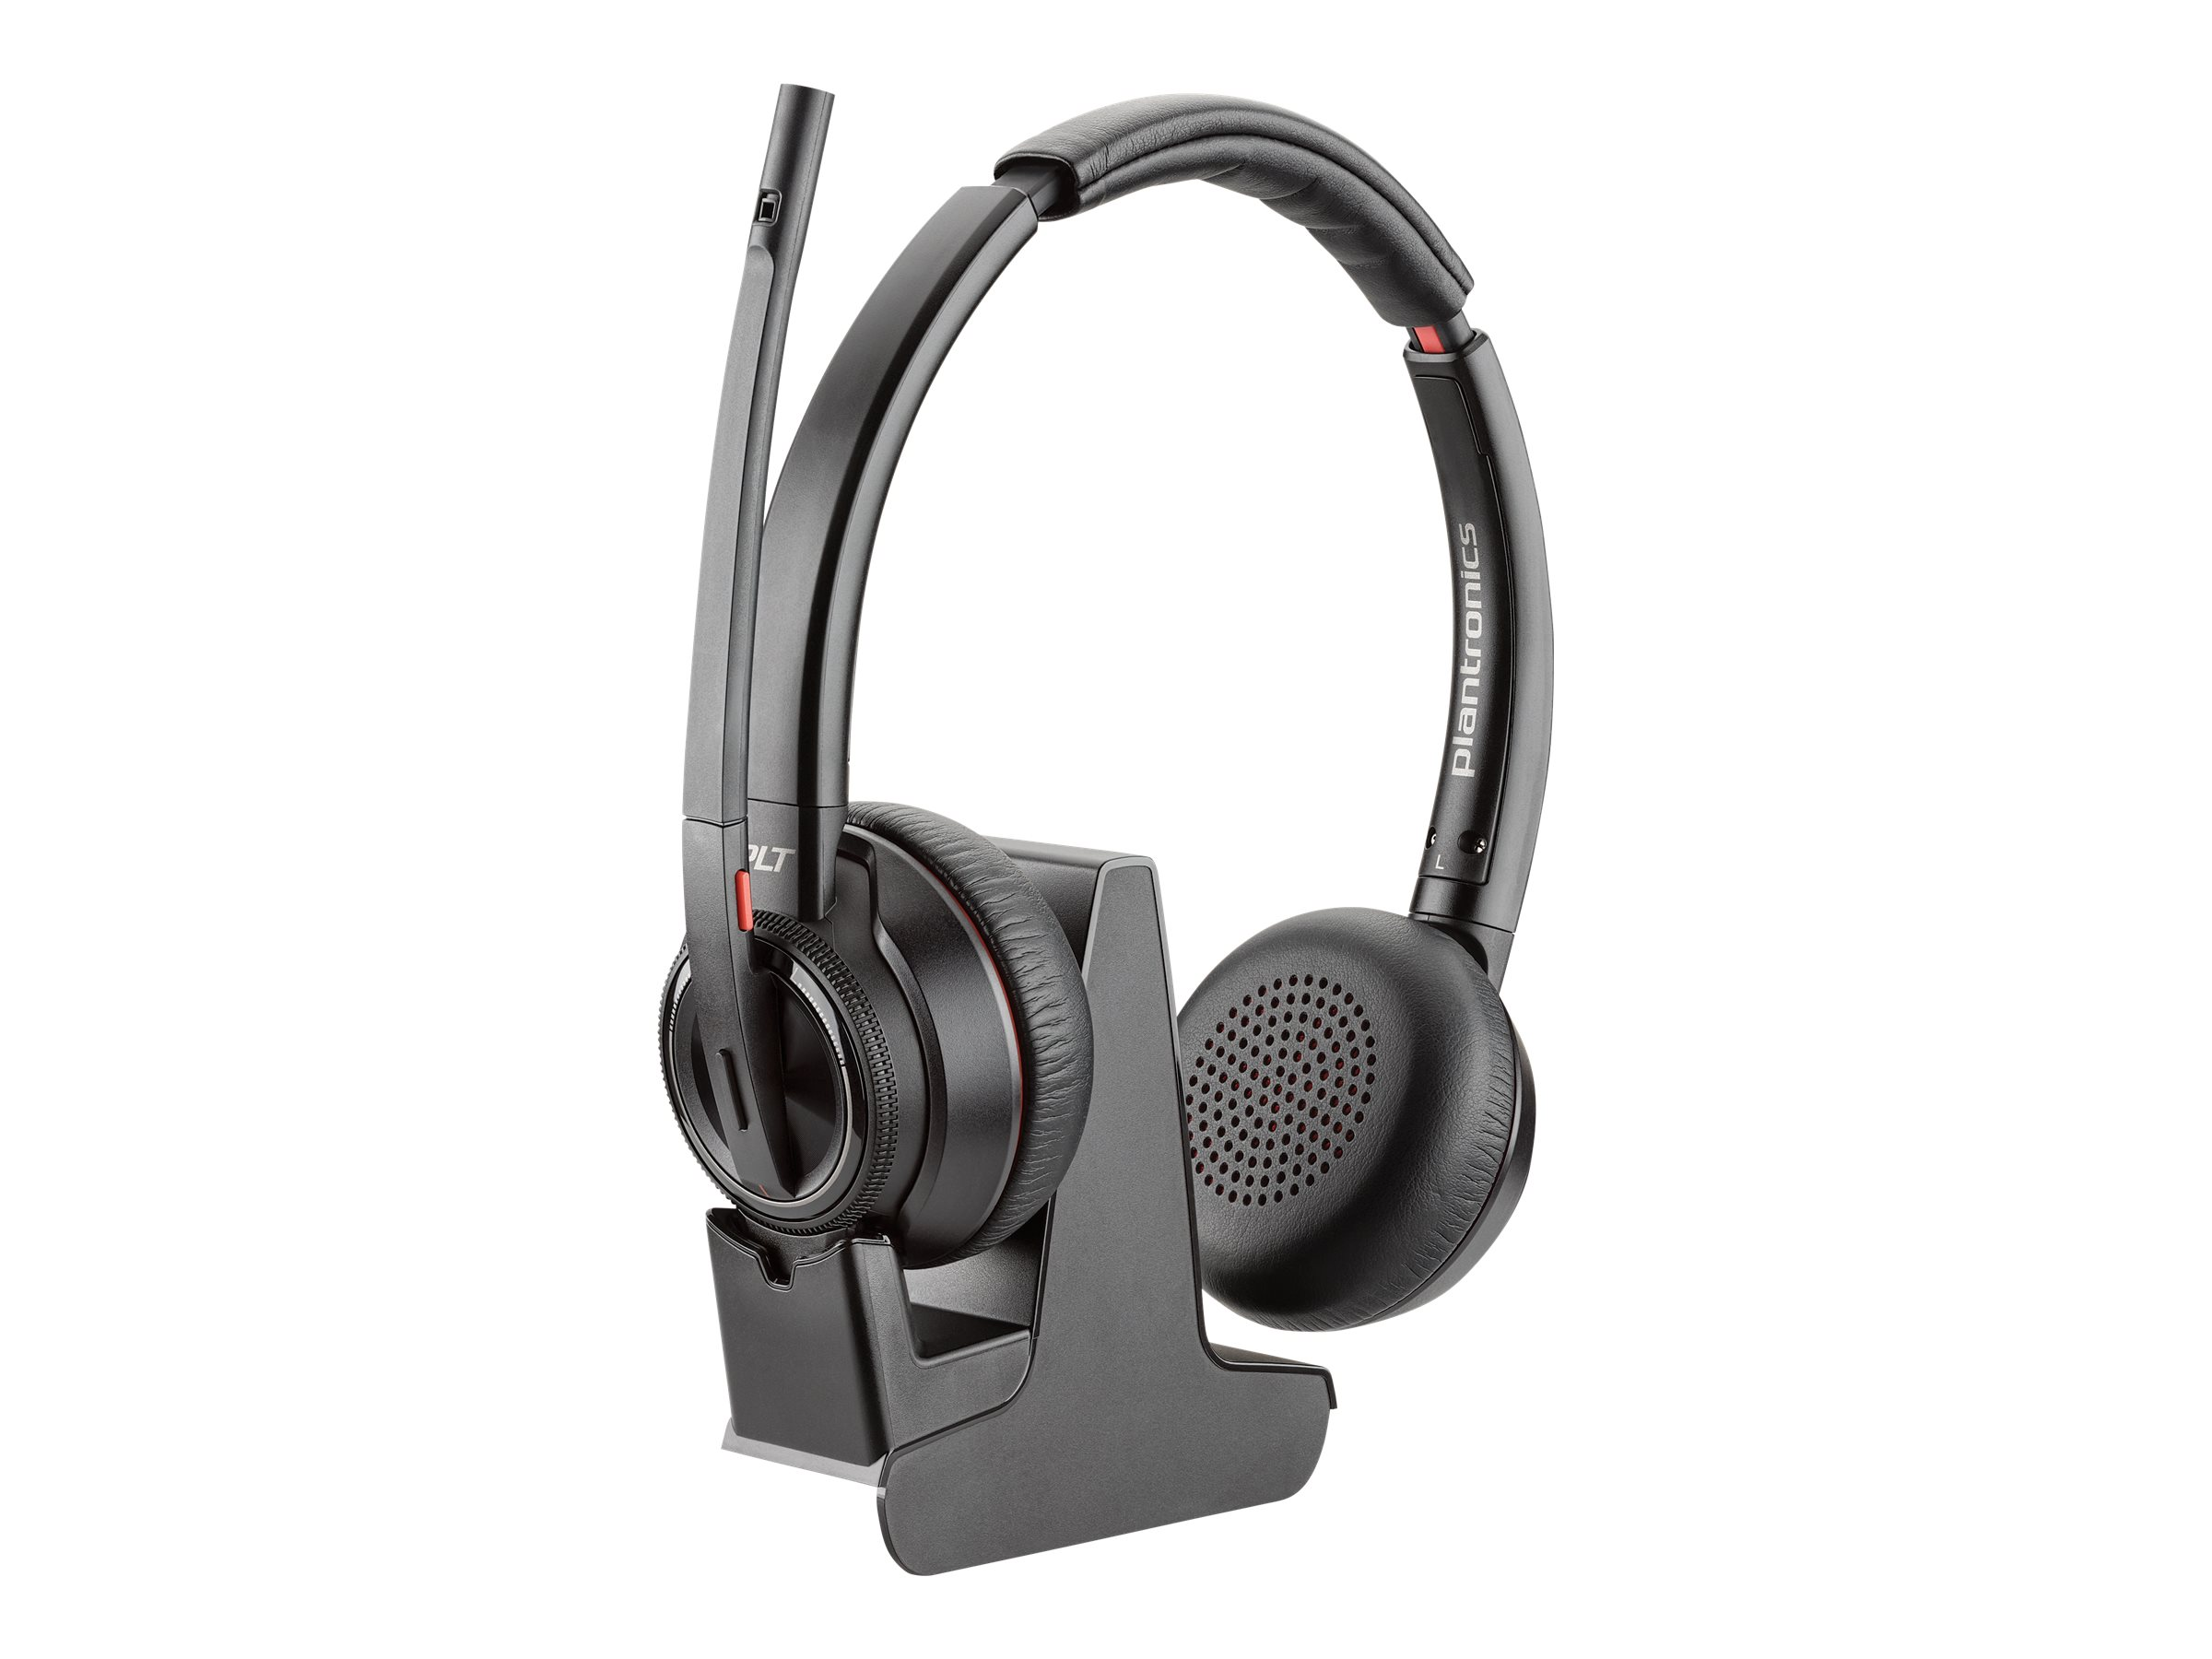 Poly - Plantronics Savi 8200 Series W8220 Spare - headset - with charging cradle